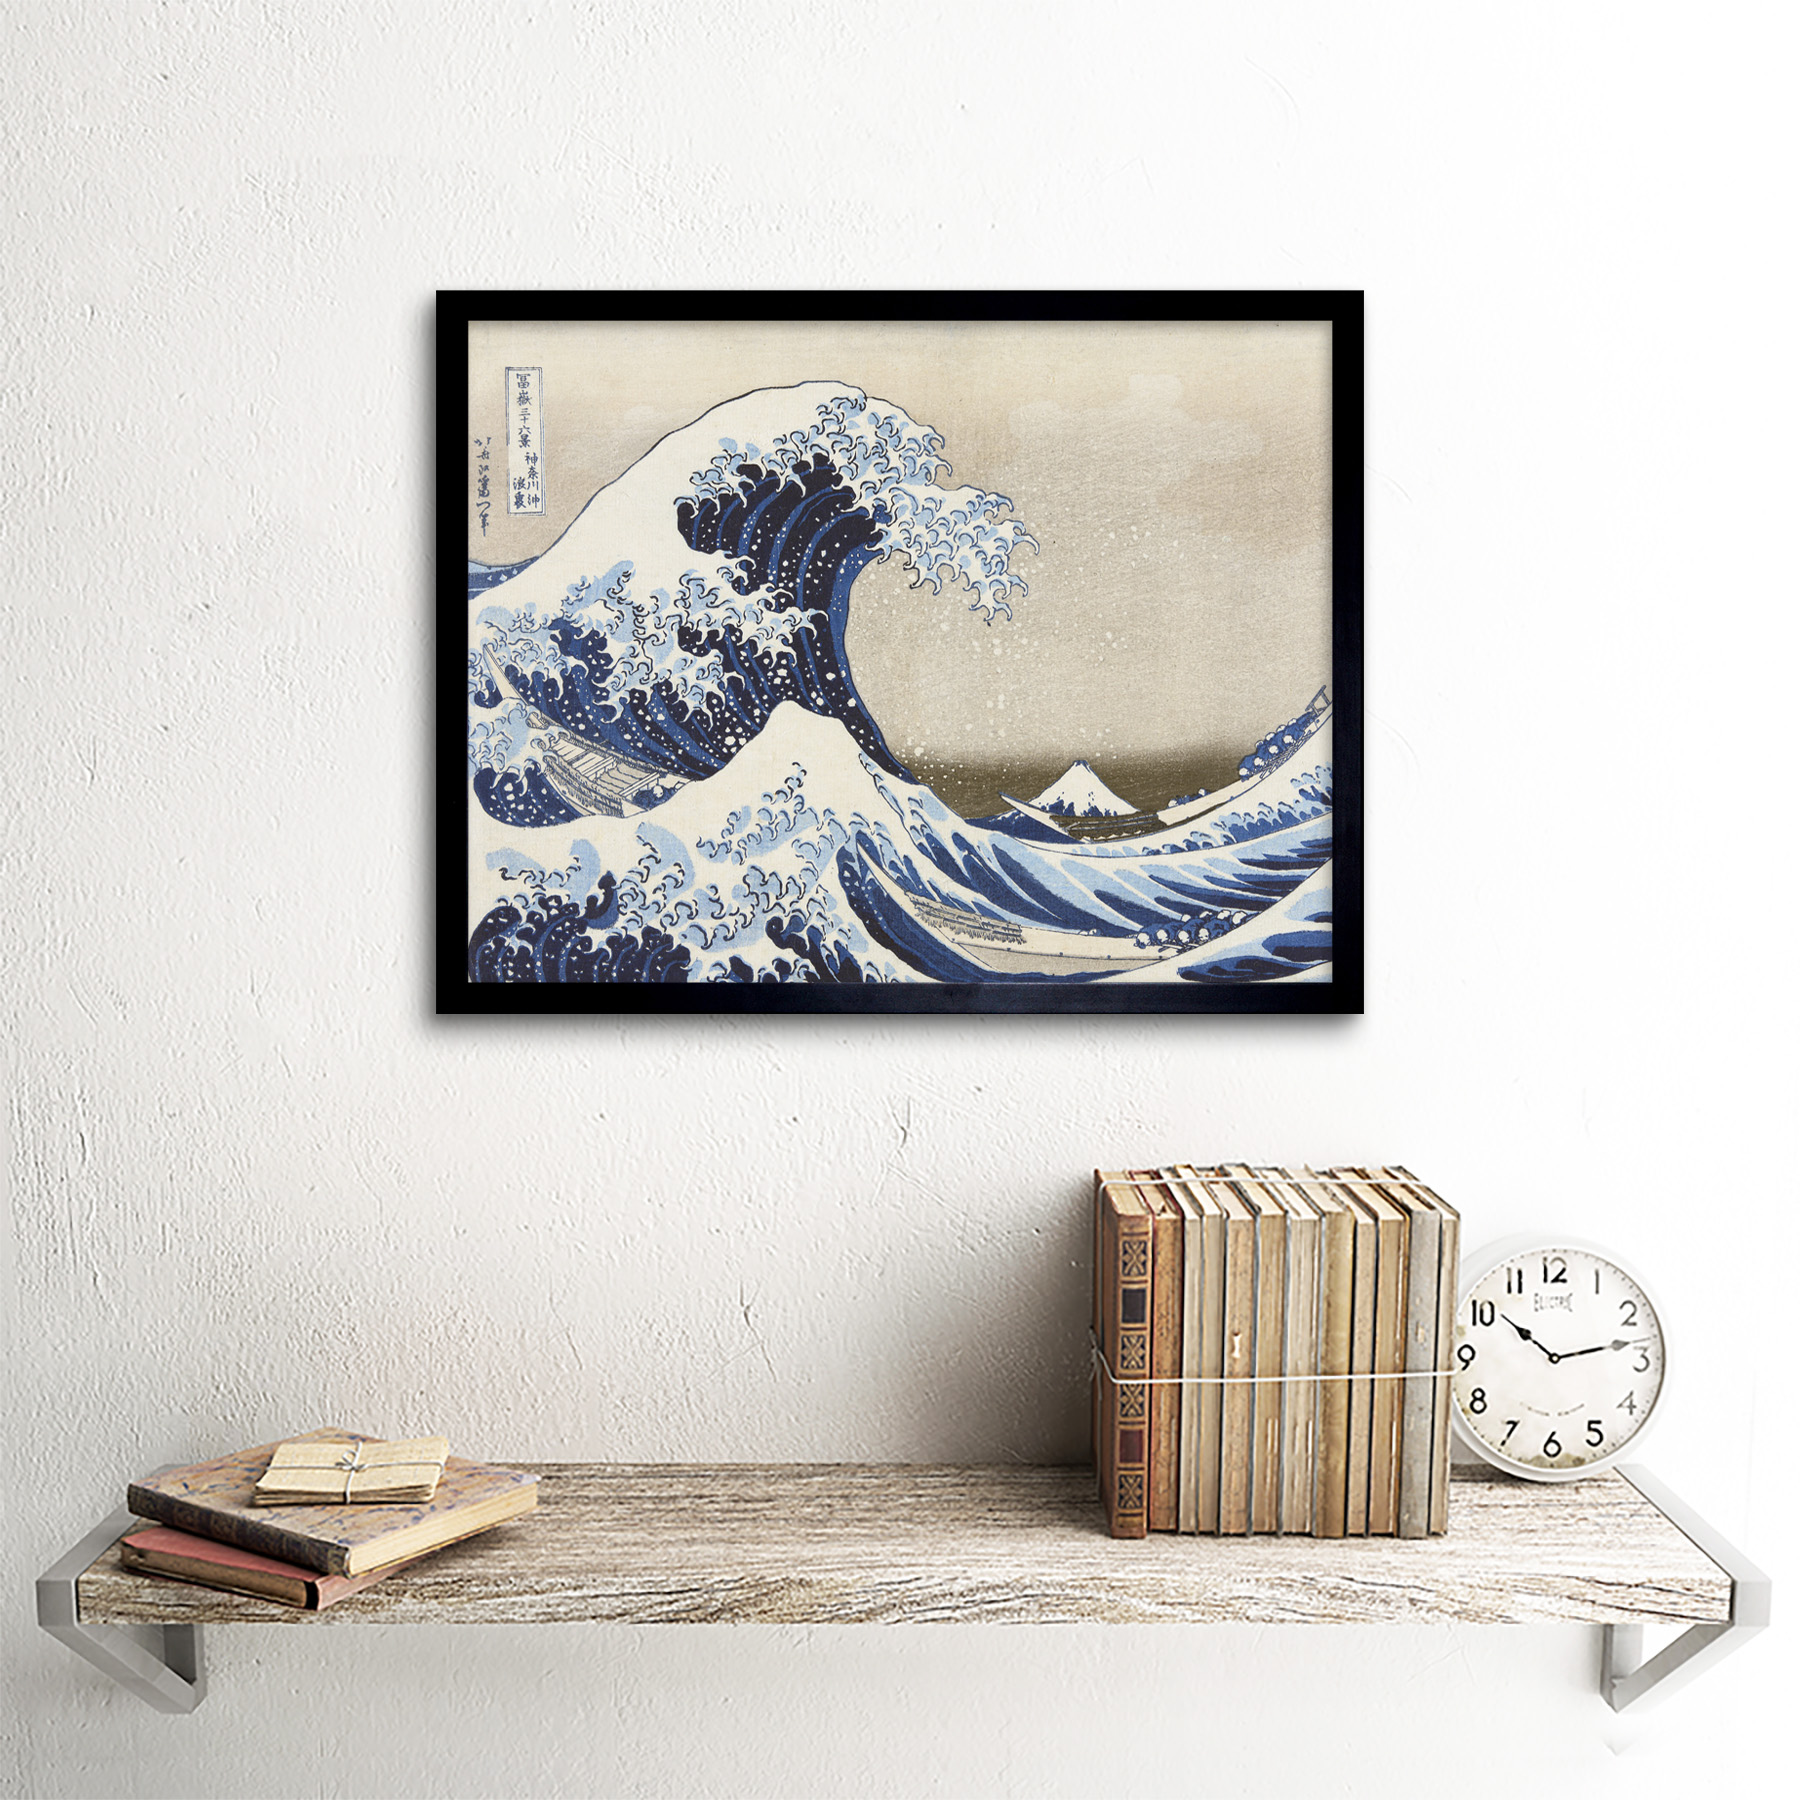 Hokusai Under Wave Kanagawa 36 Views Mount Fuji Painting Art Print Framed 12x16